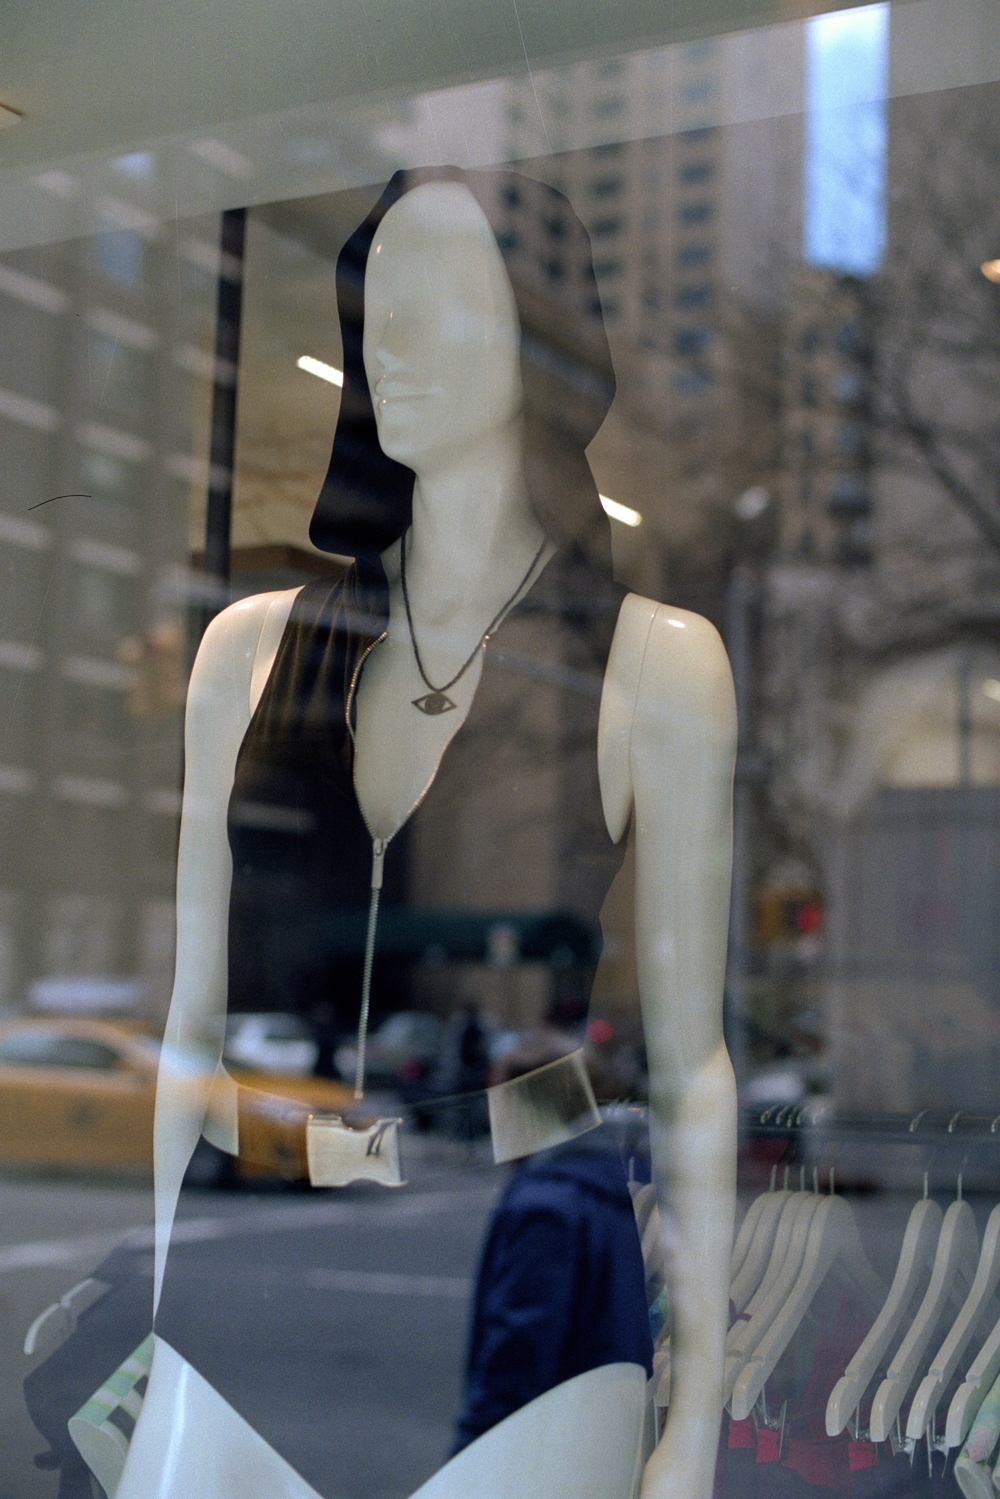 Mannequin No.4, New York City, NY. 2014. C-Print.